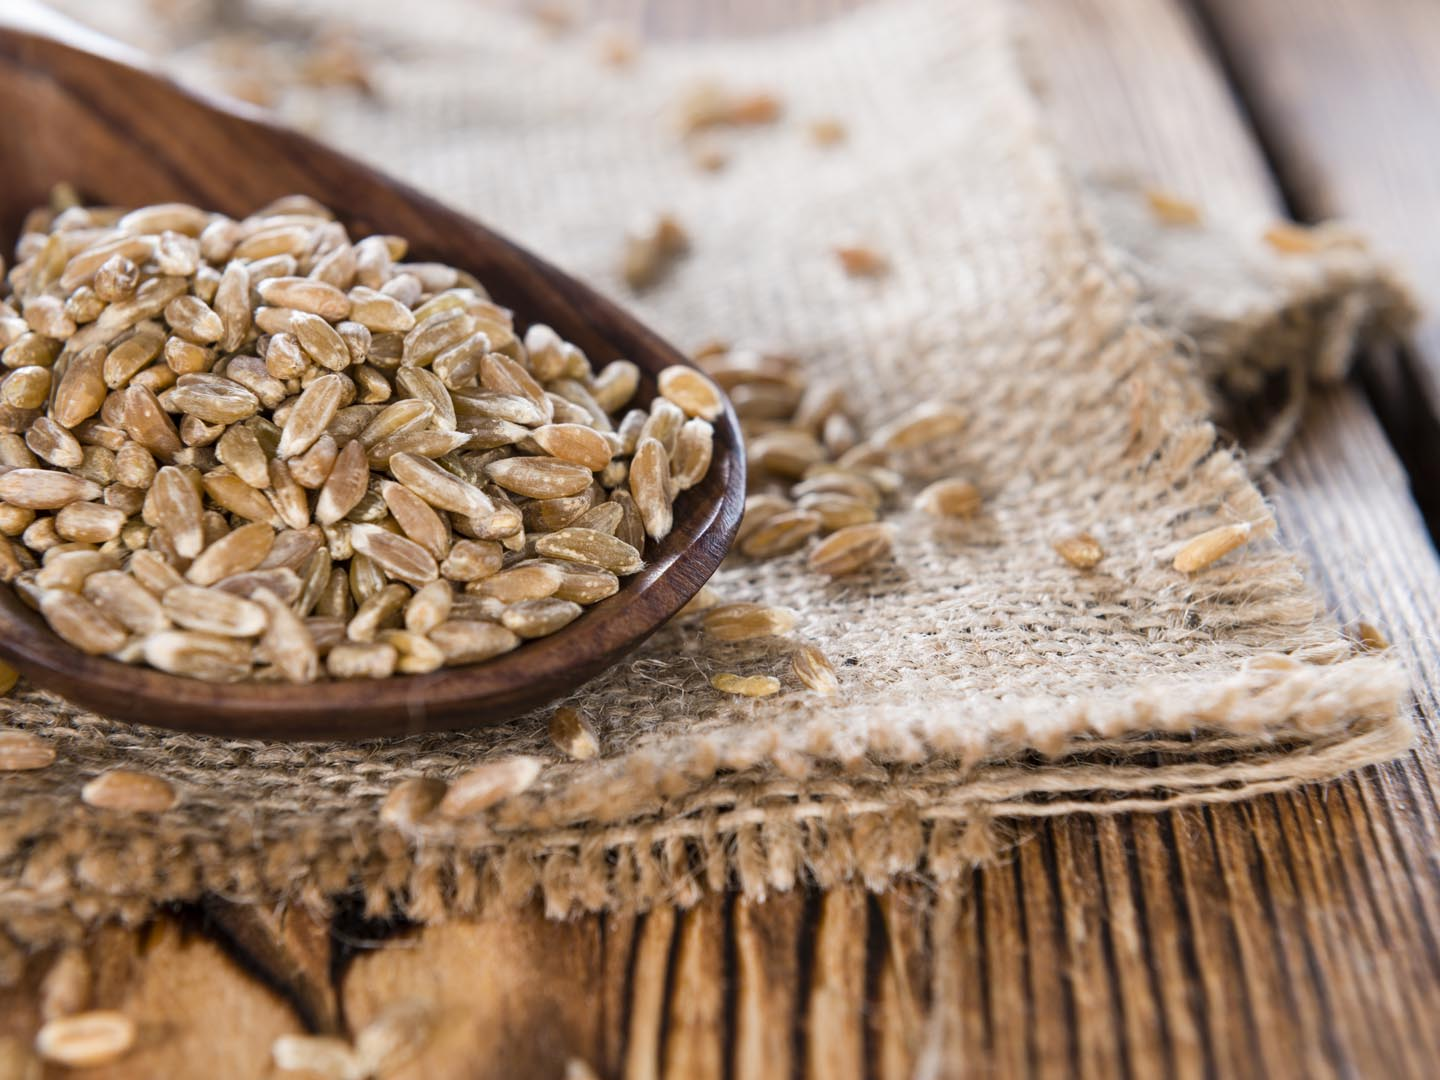 Cooking With Grains: Spelt - Dr. Weil's Healthy Kitchen